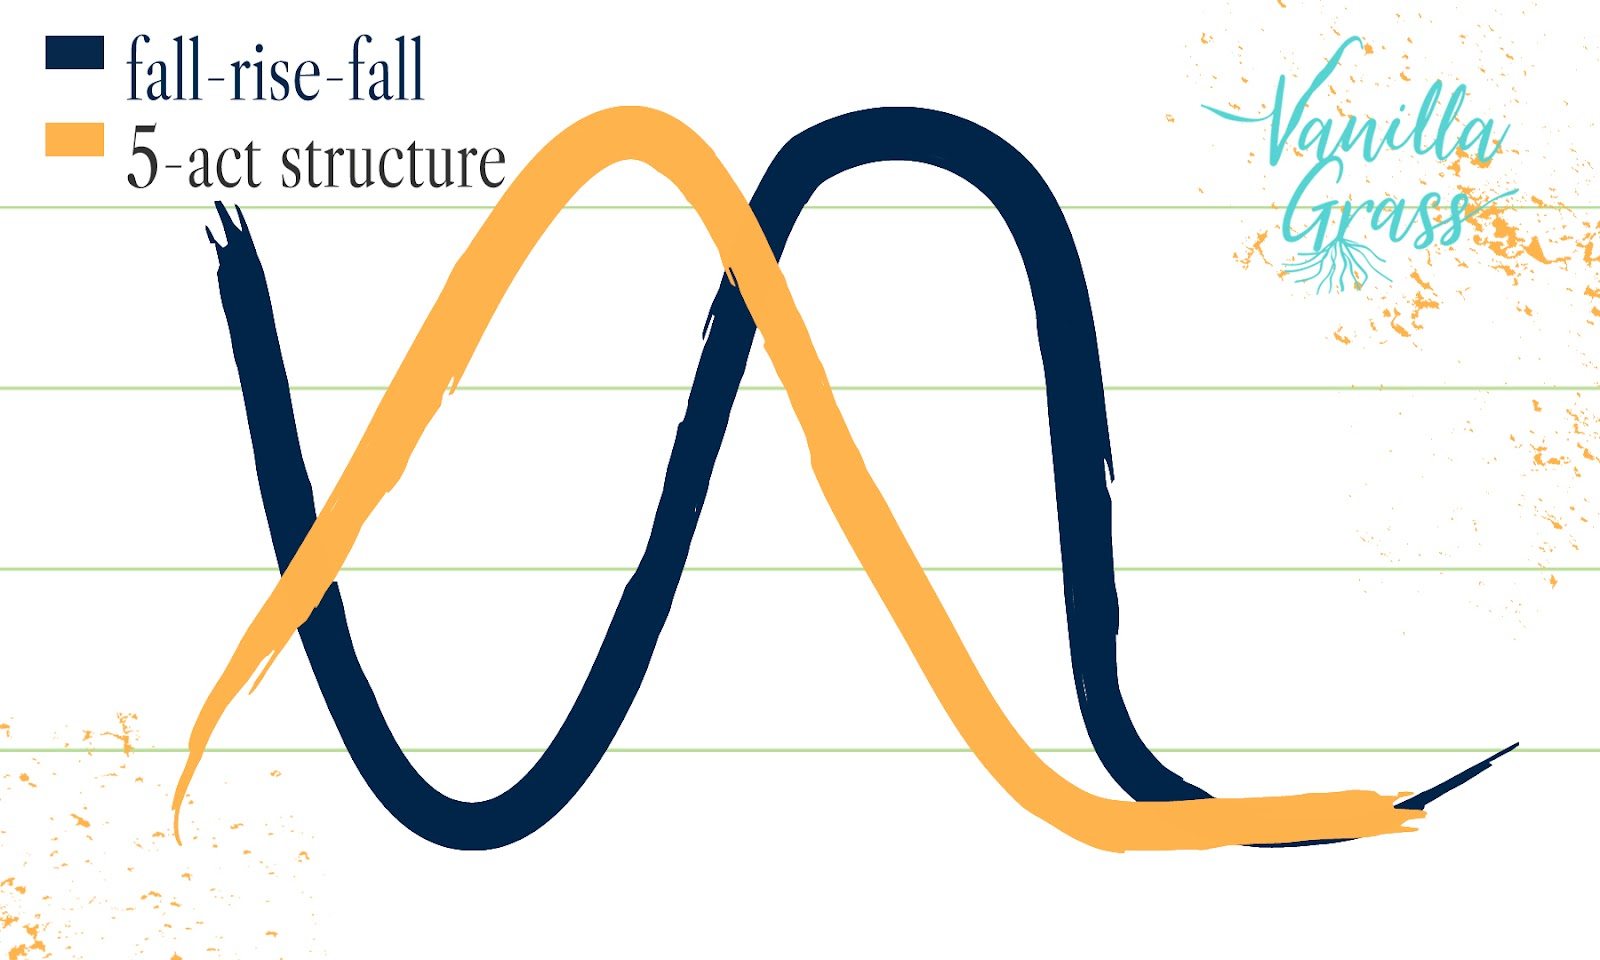 A slightly skewed graph of the fall-rise-fall emotional story arc with Freytag's 5-act story plot structure matches the falls and rises of each so that fit more closely.